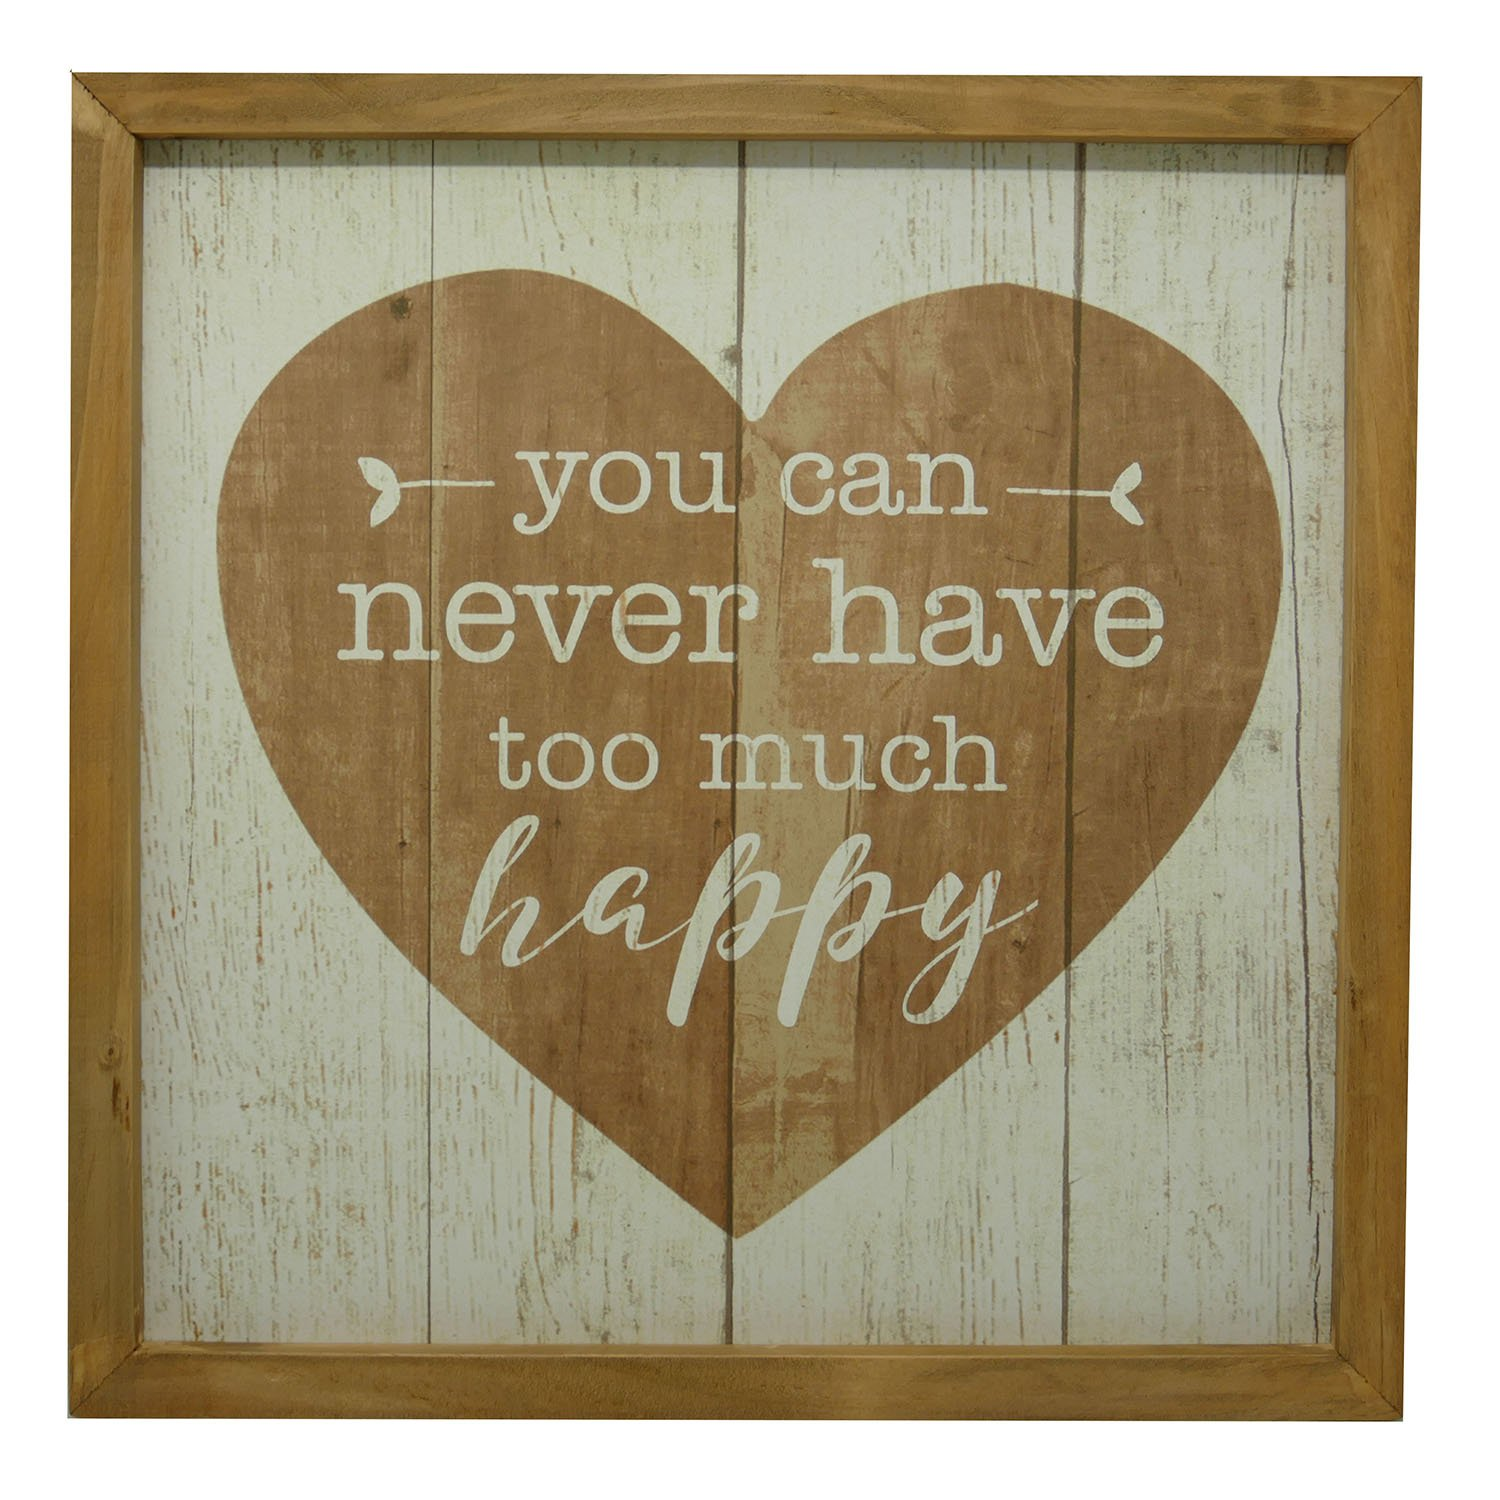 NIKKY HOME Decorative Wood Framed Sign Wall Art with Inspirational Quote You can Never Have Too Much Happy